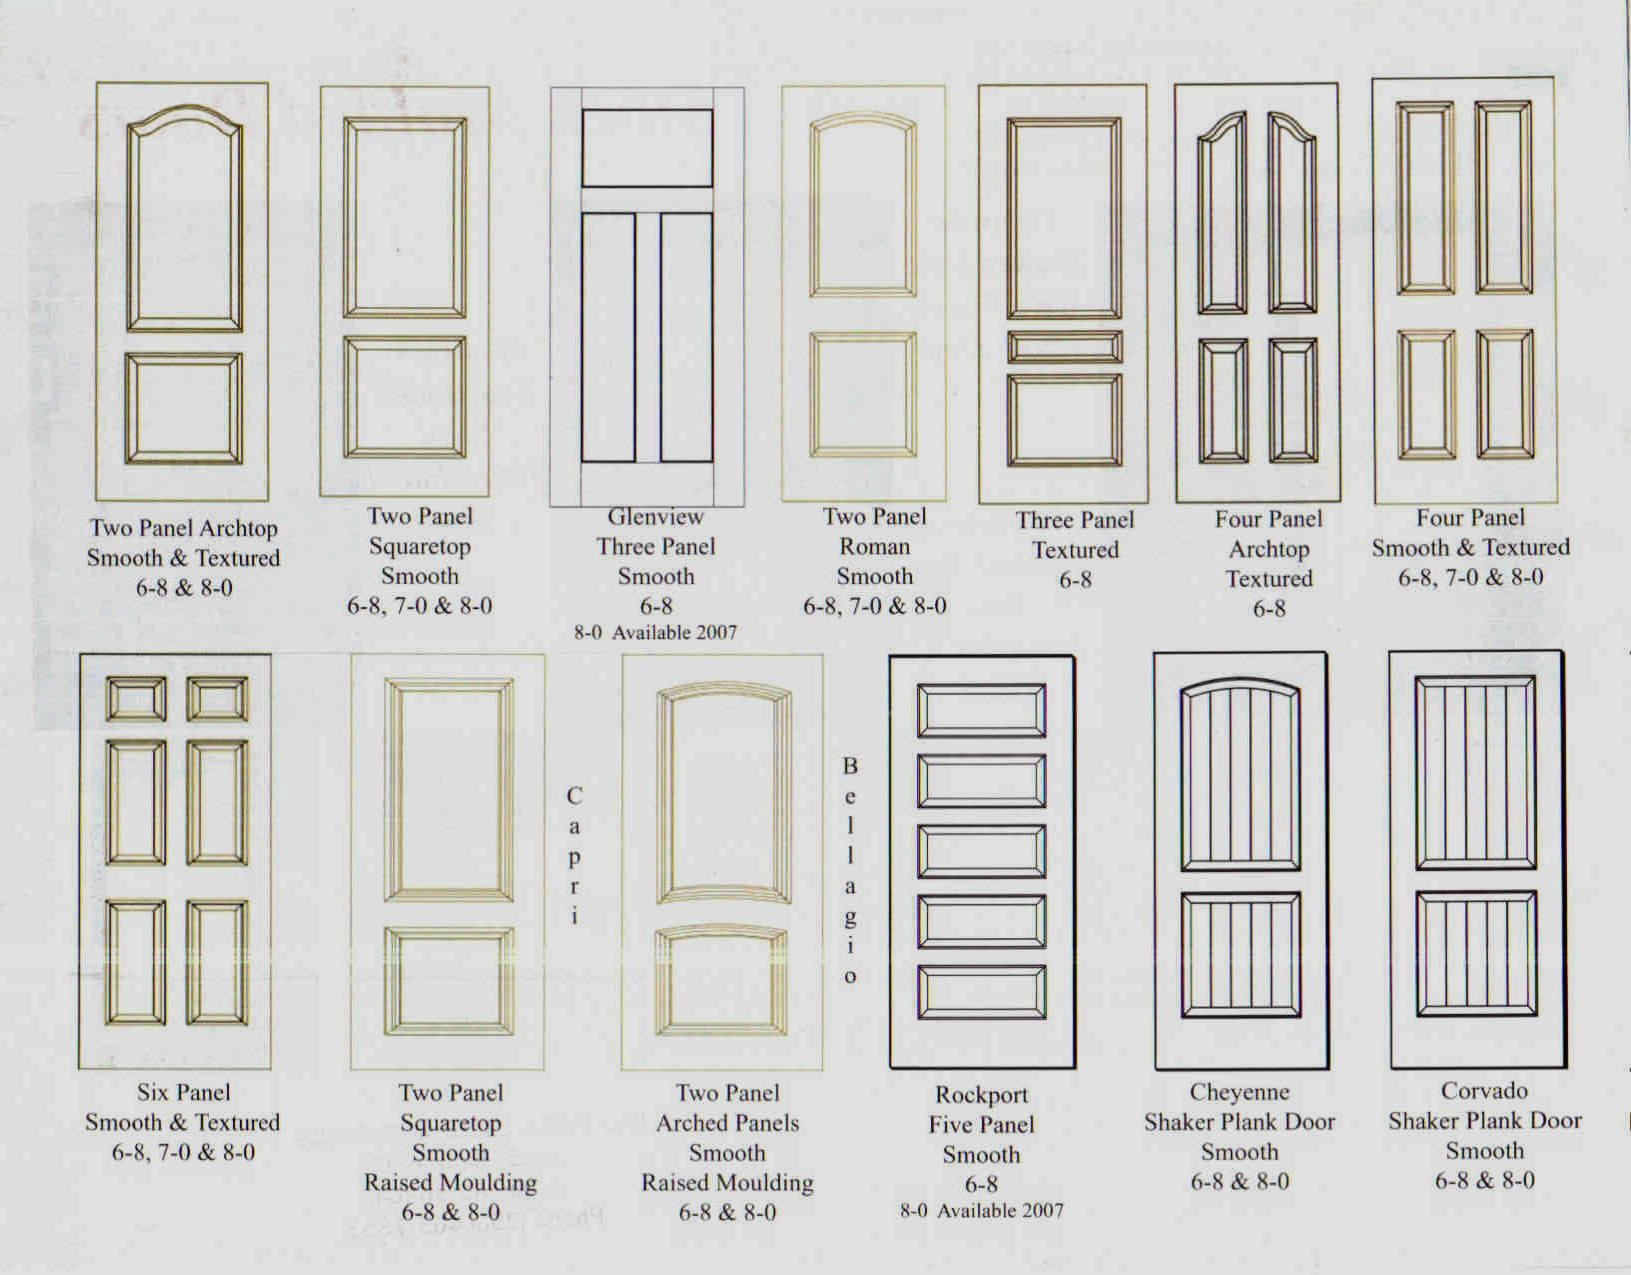 Interior doors names and styles standard chart for Different types of interior doors